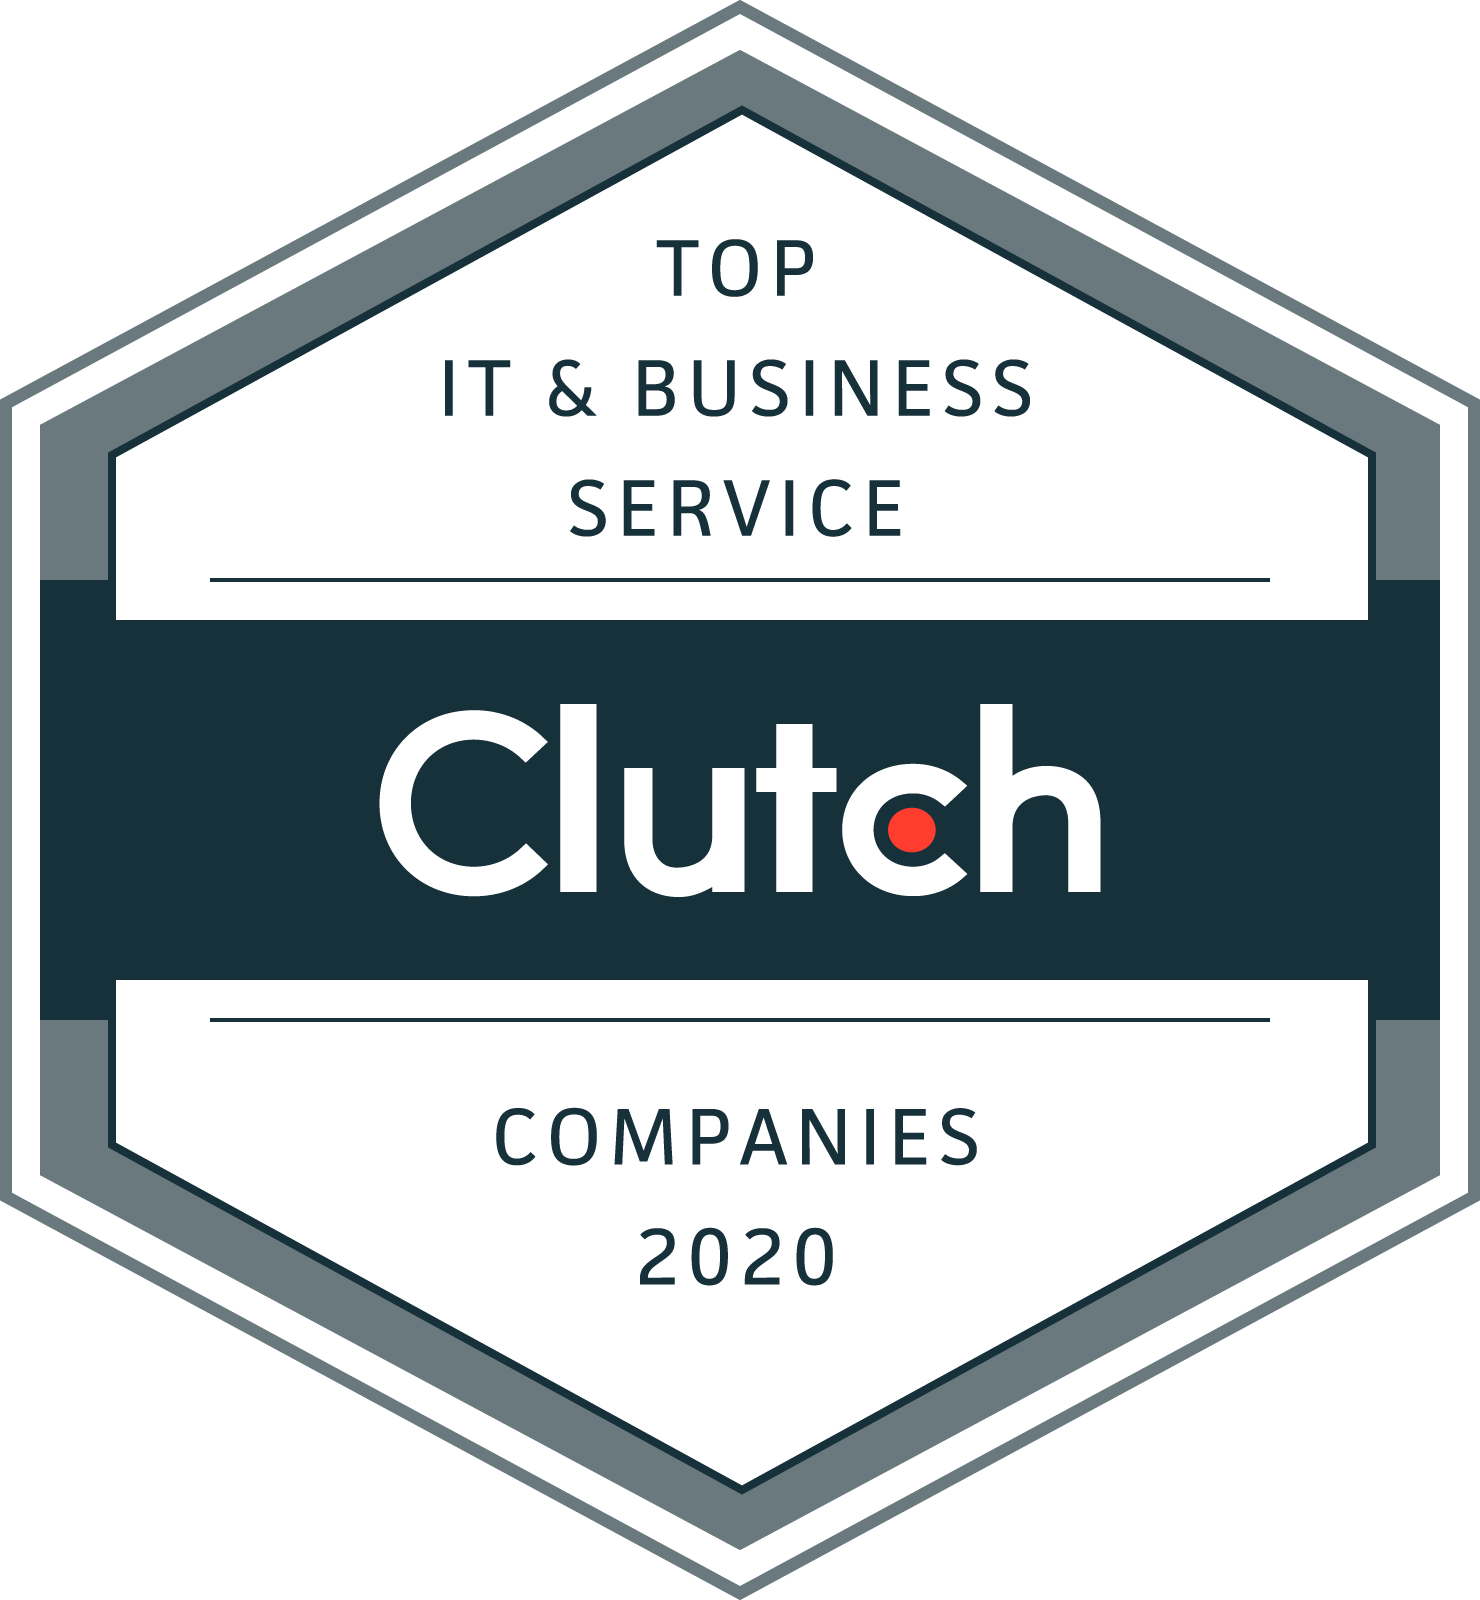 IT_Business_Service_Companies_2020-2